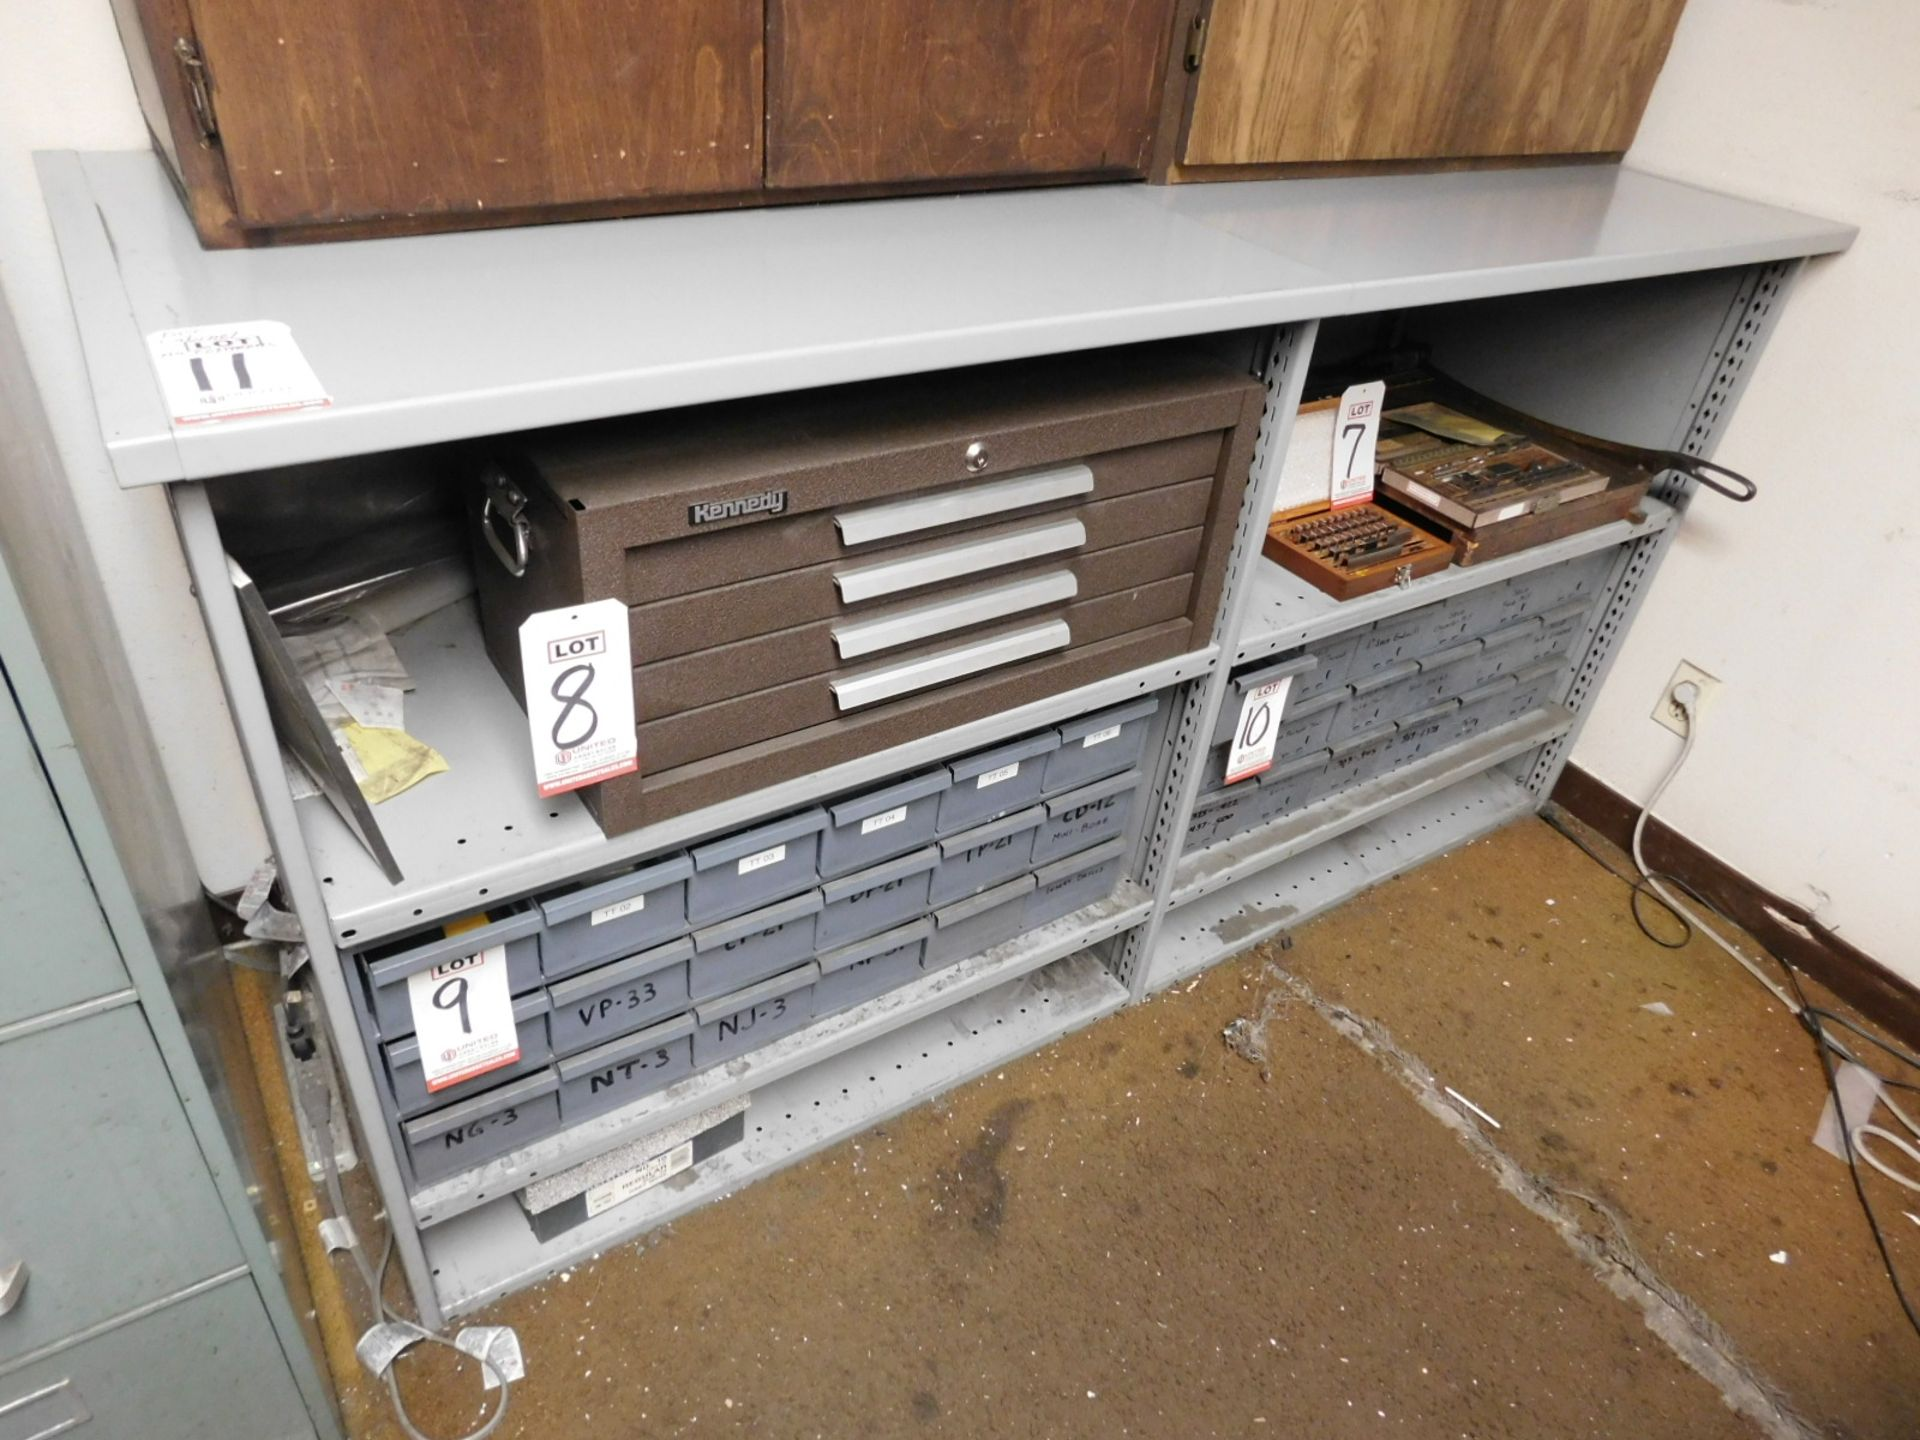 Lot 11 - STEEL BASE CABINET, W/ OPEN SHELVES, CONTENTS NOT INCLUDED